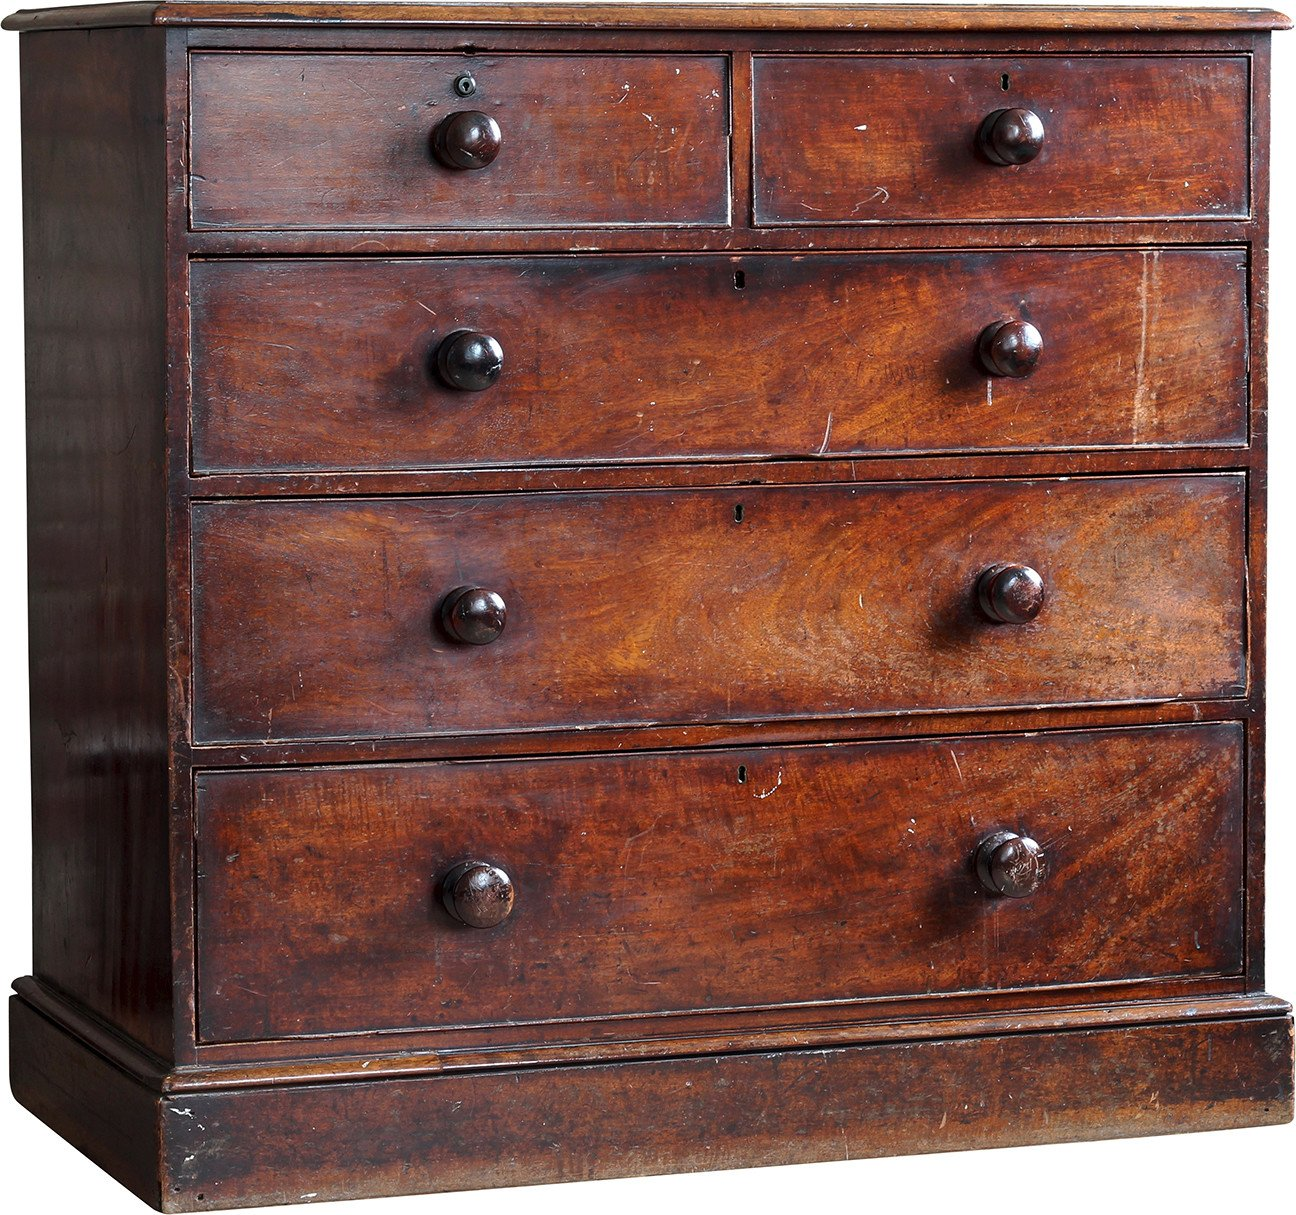 Chest of Drawers, England, 19th C.